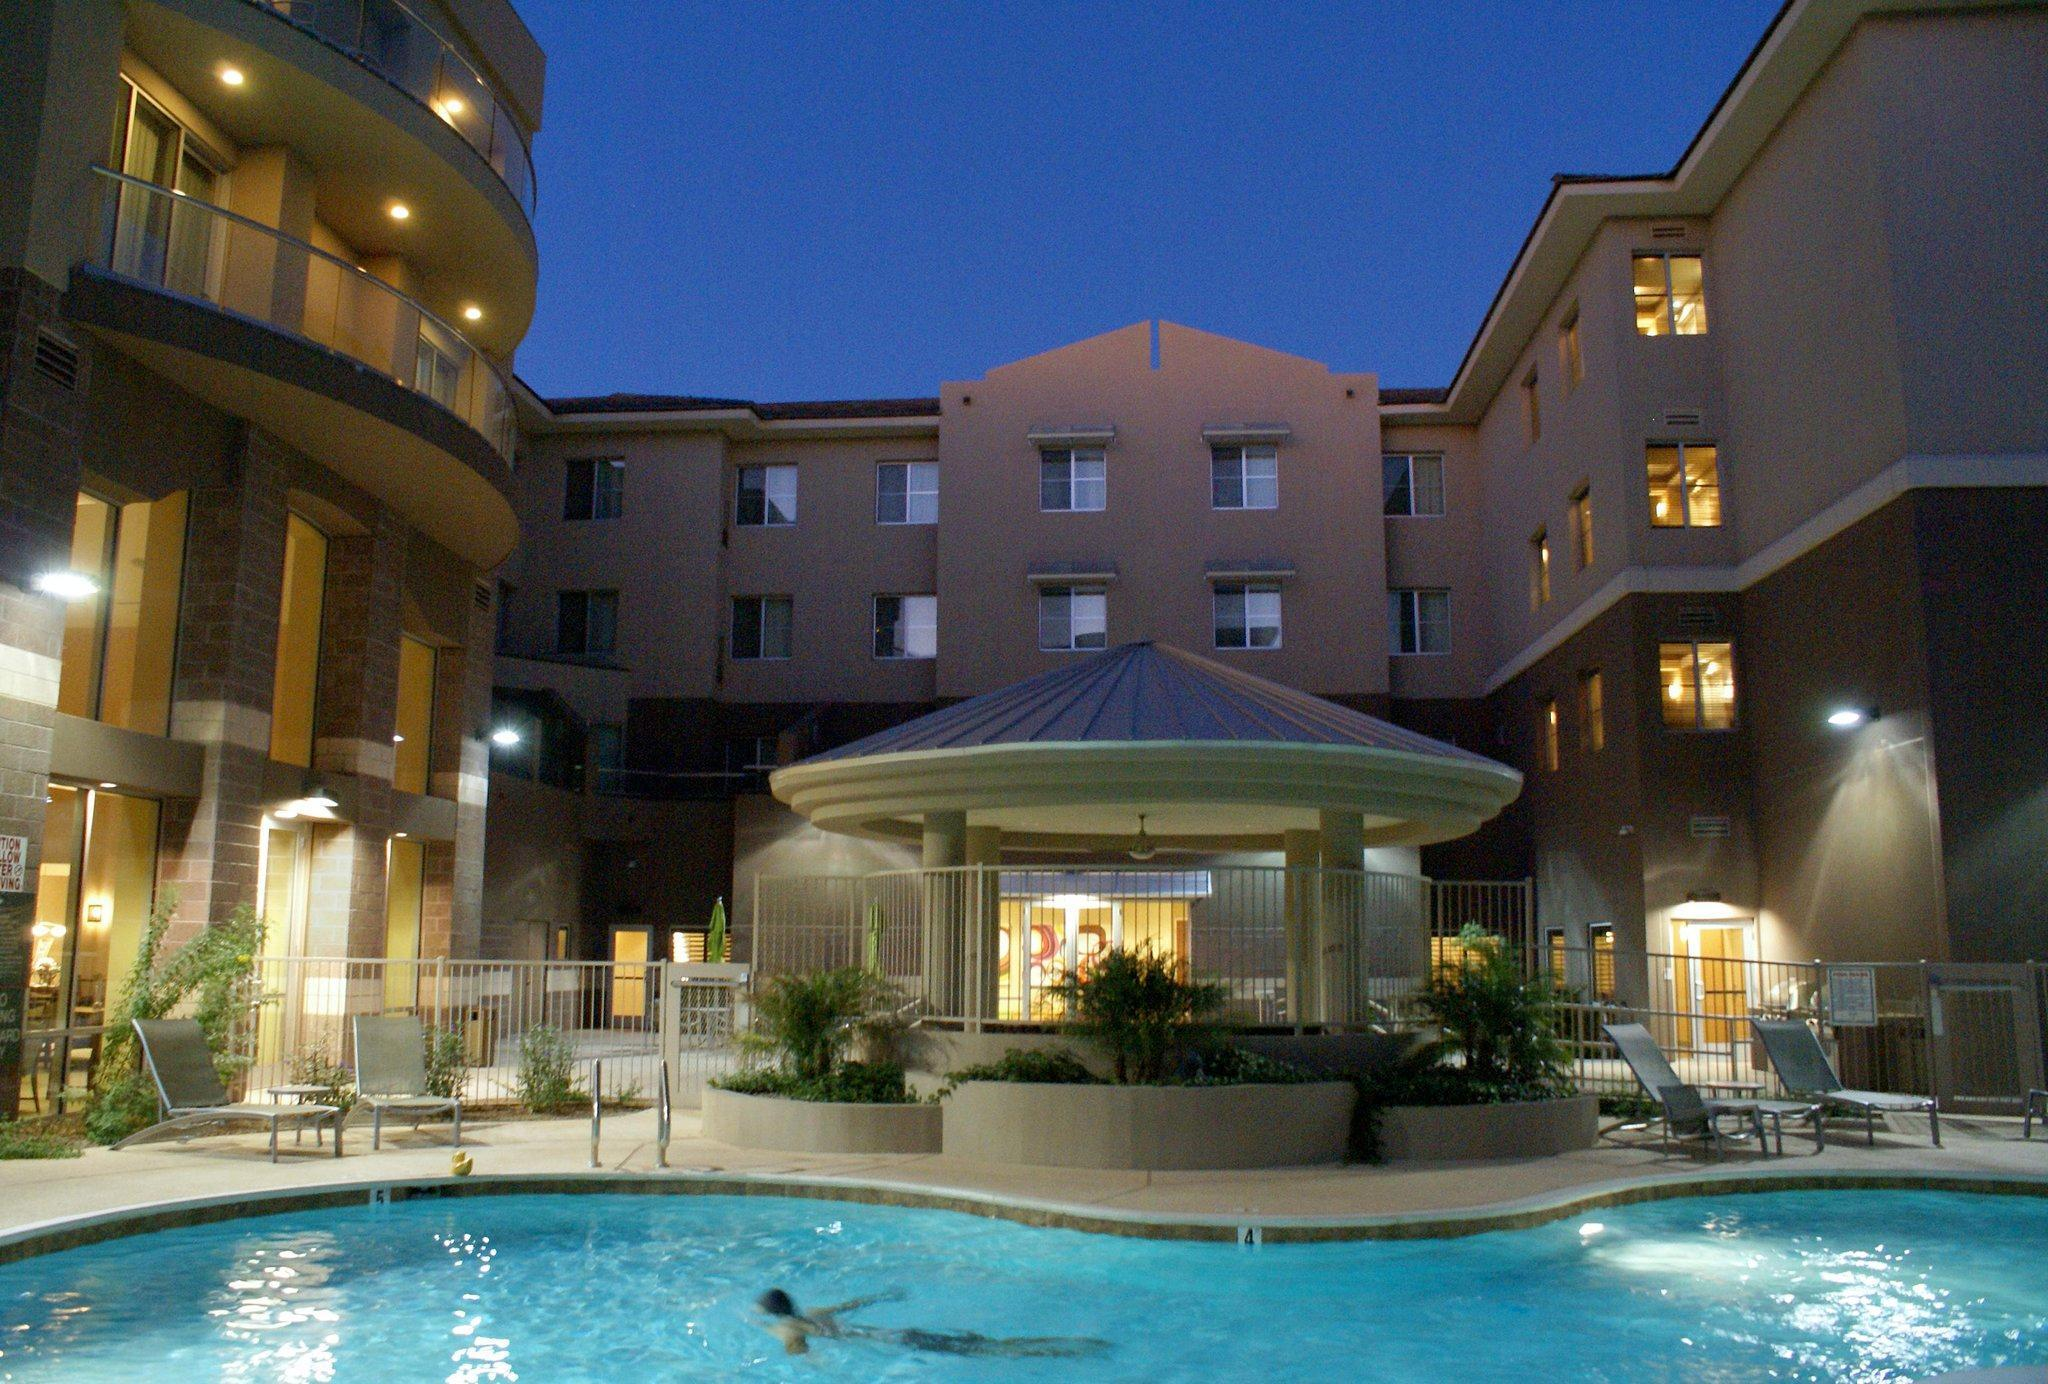 Homewood Suites By Hilton Phoenix Airport South Hotel